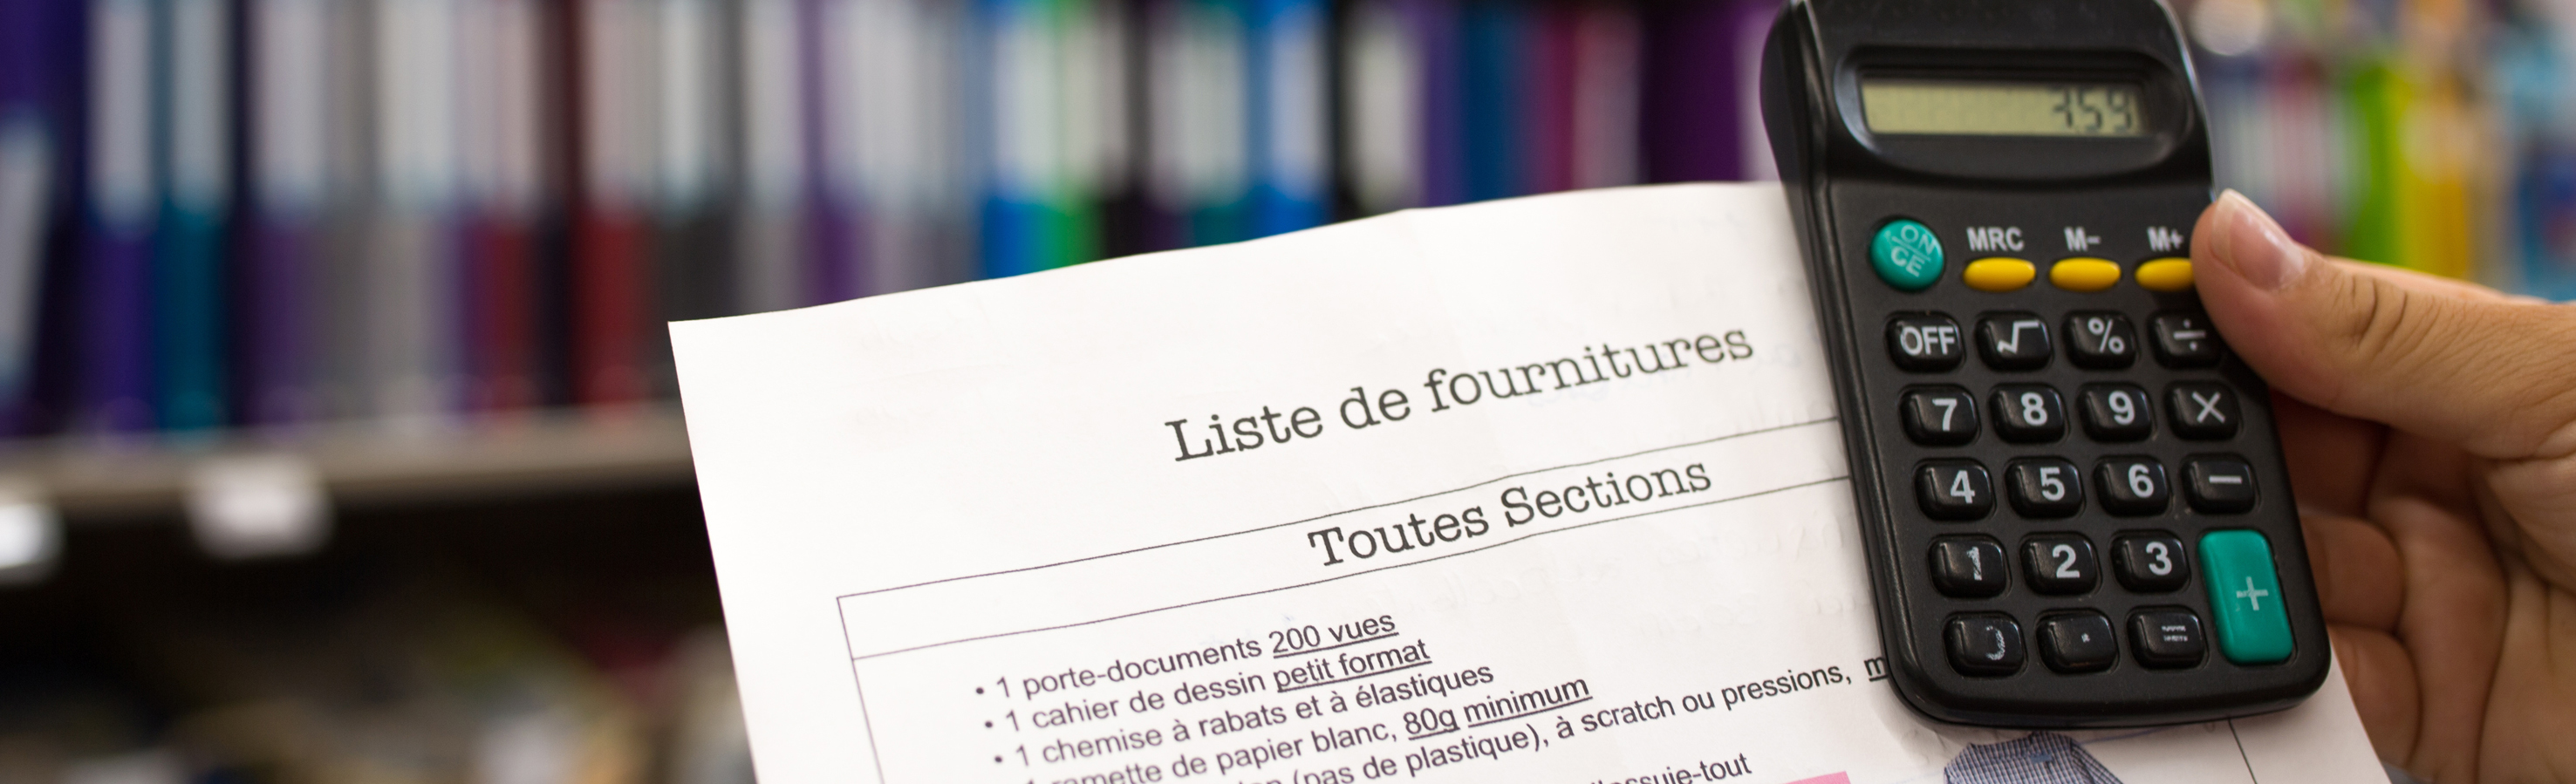 Allocation De Rentree Scolaire